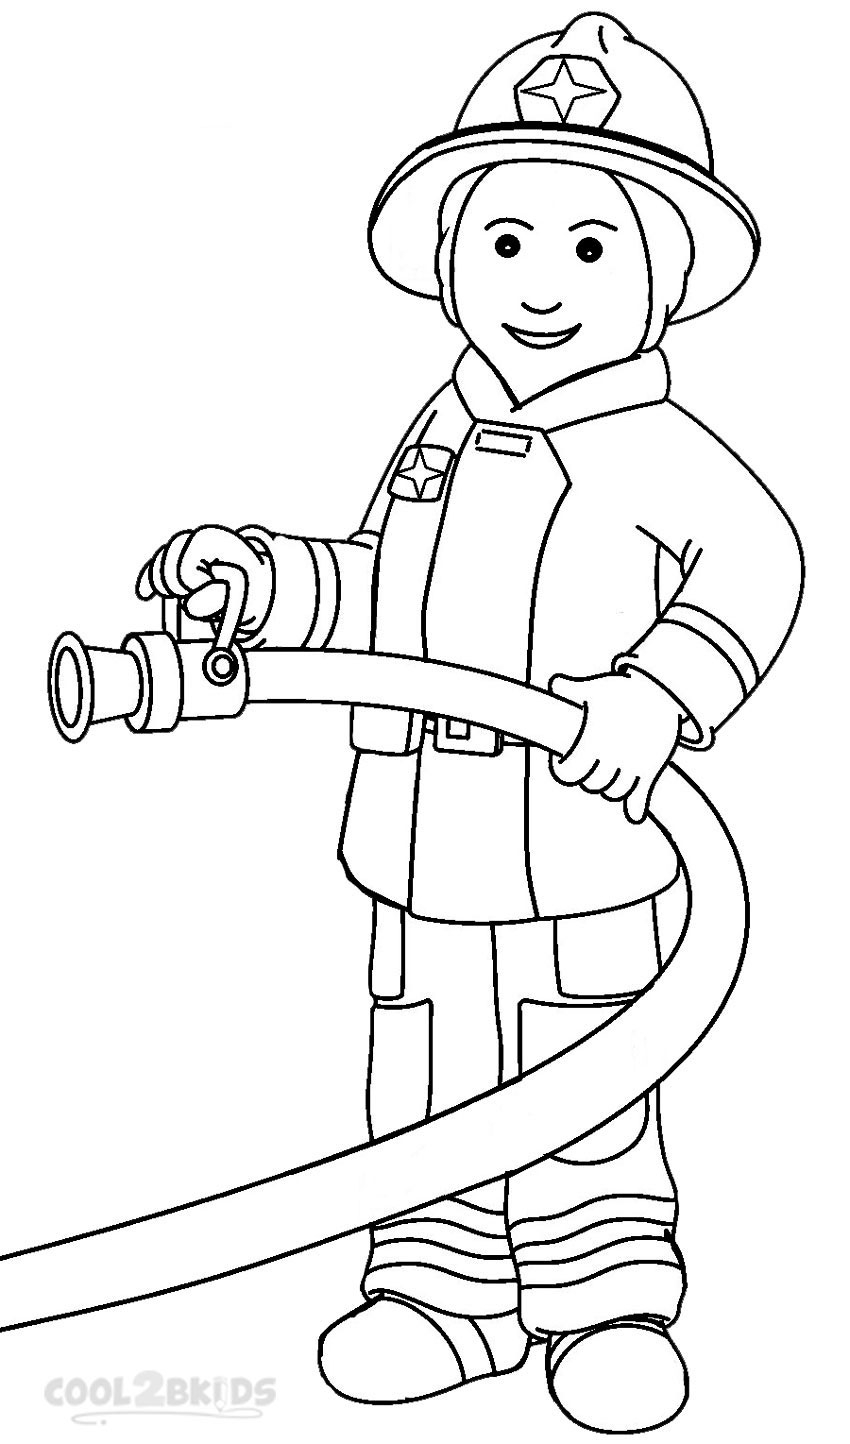 fireman coloring pages - fireman coloring pages